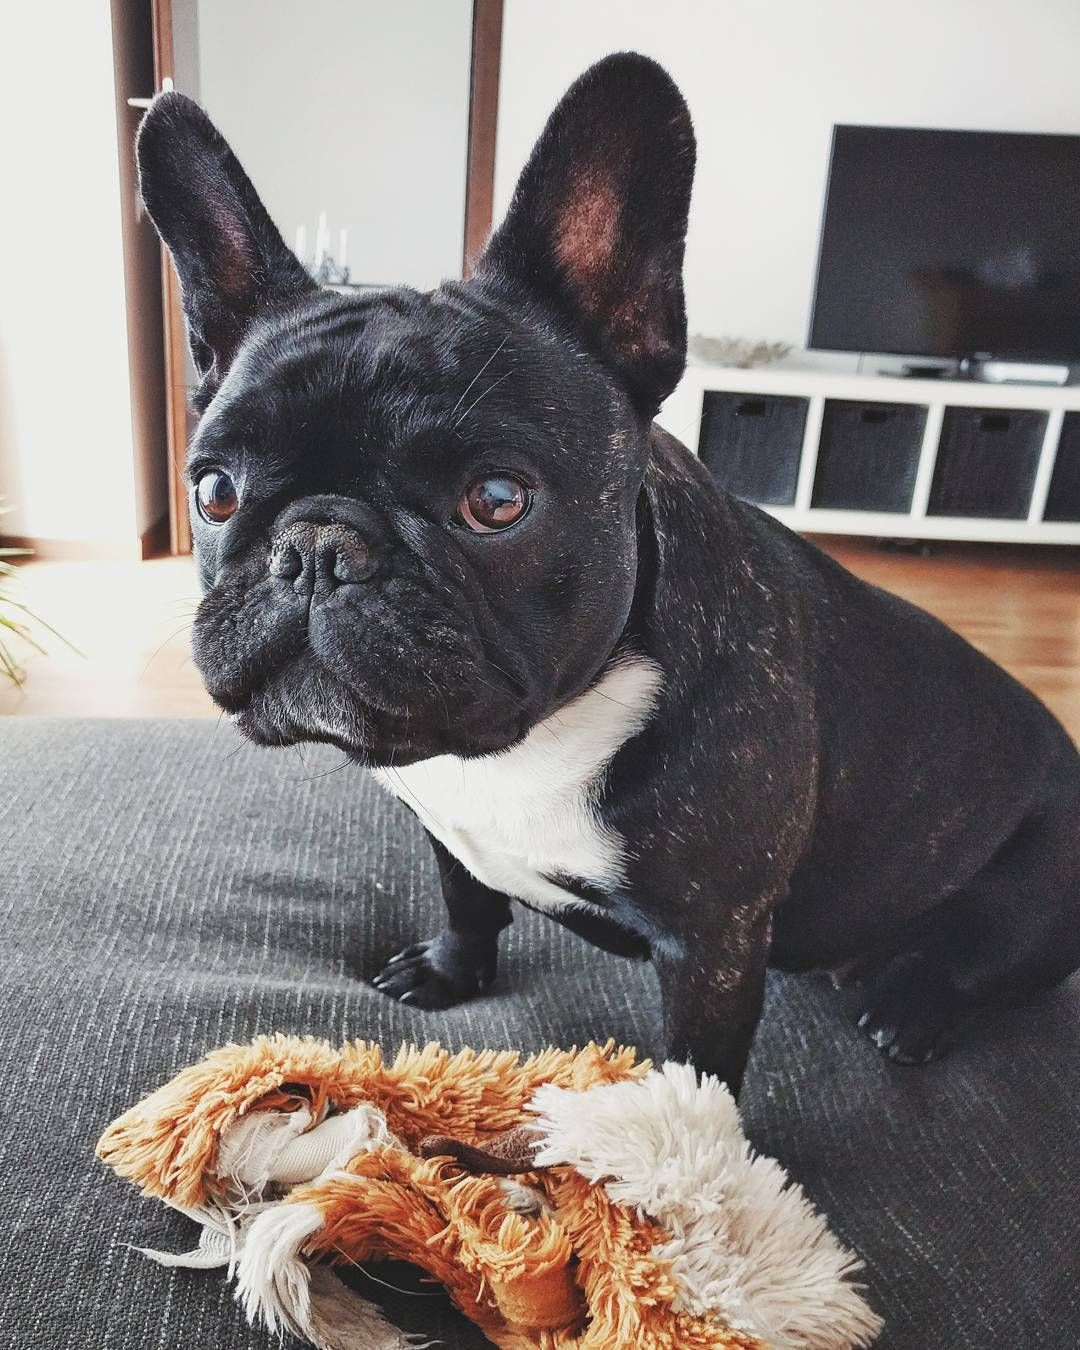 Let S Play Lilythedog Playtime Pets Petsofinstagram Frenchbulldog Frenchy Cute Home Sunday Snapseed Nexus5x French Bulldog Pets Dogs